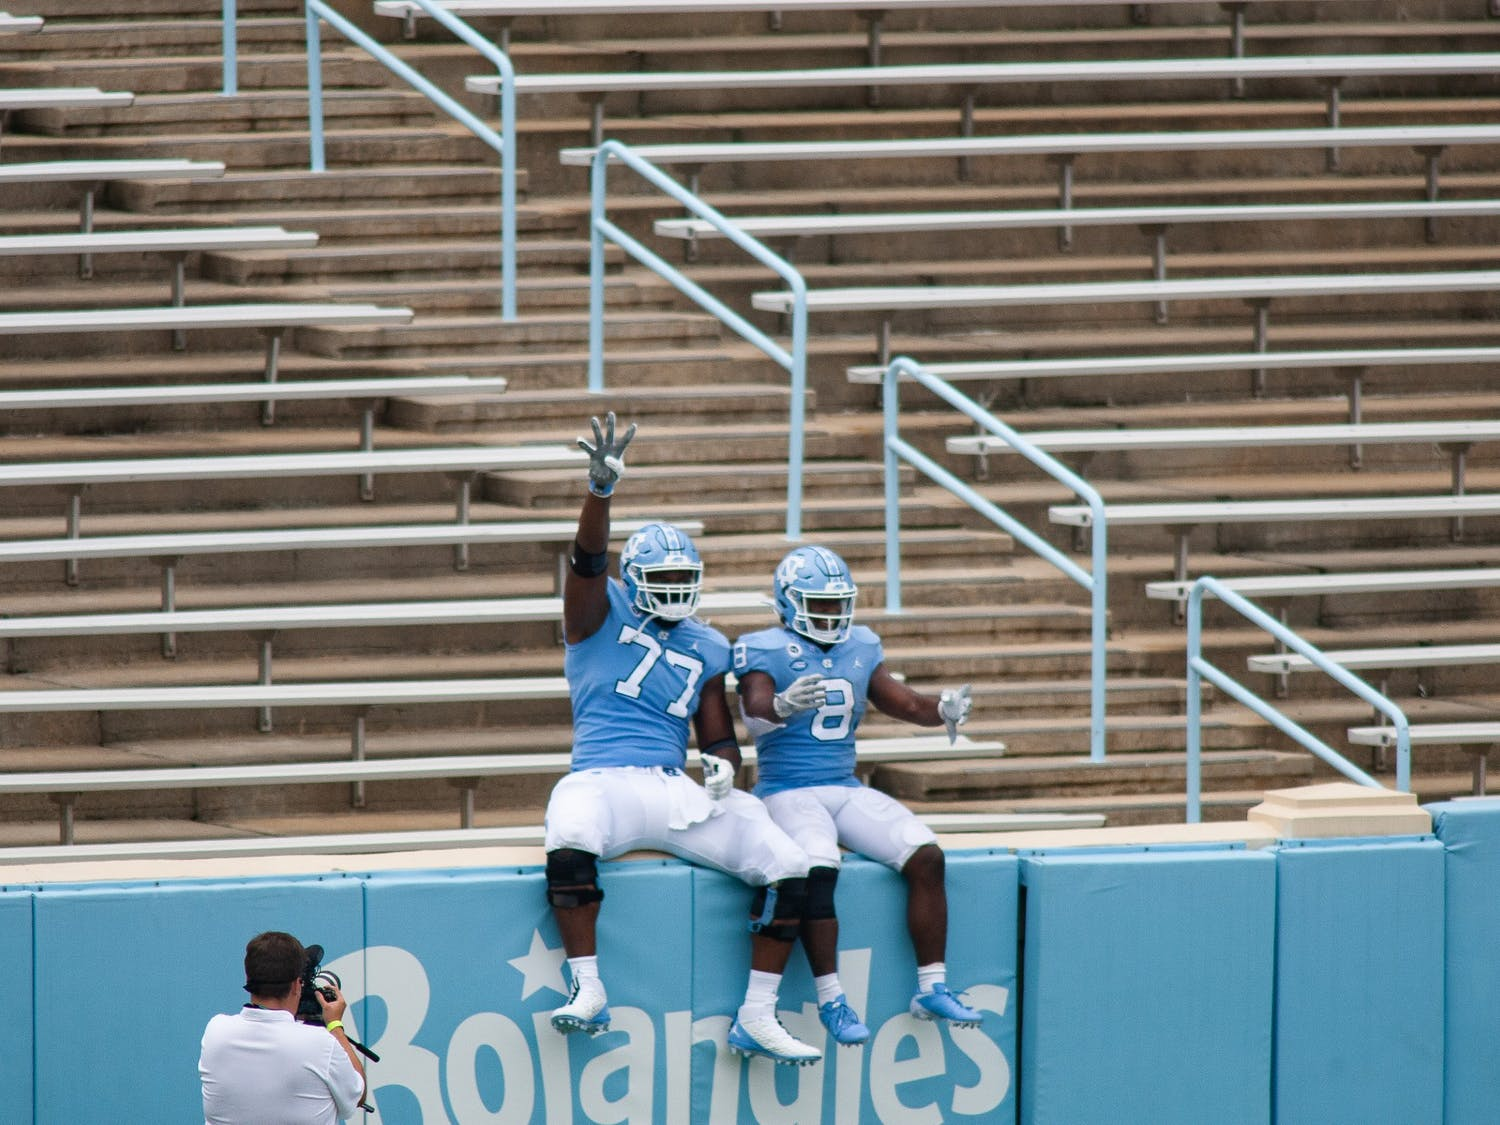 UNC senior running back Michael Carter (8) and and redshirt first year offensive lineman Wisdom Asaboro (77) lead a cheer from the empty student section of Kenan Memorial  Stadium before the beginning of the fourth quarter during a game against Syracuse ion Saturday, Sept. 12, 2020. UNC beat Syracuse 31-6.